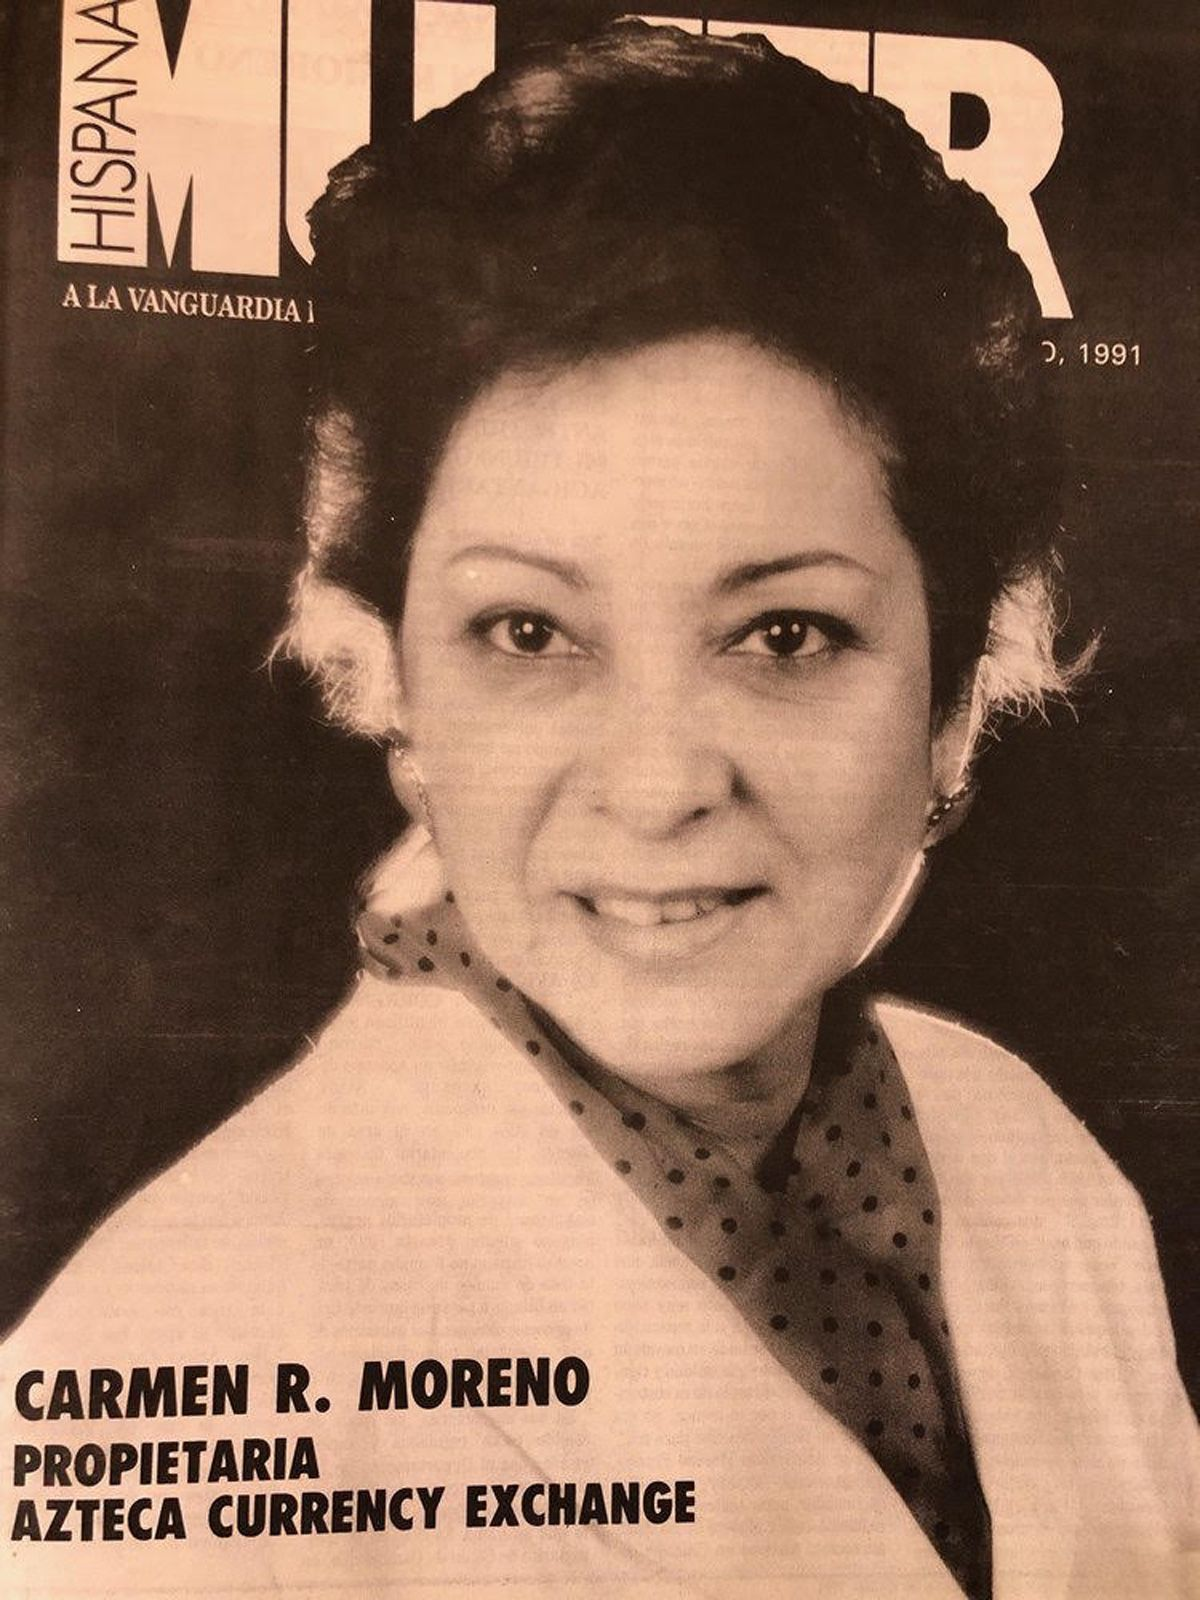 Carmen Moreno Martinez was honored as a top businesswoman n 1991 by the magazine Hispanic Mujer.